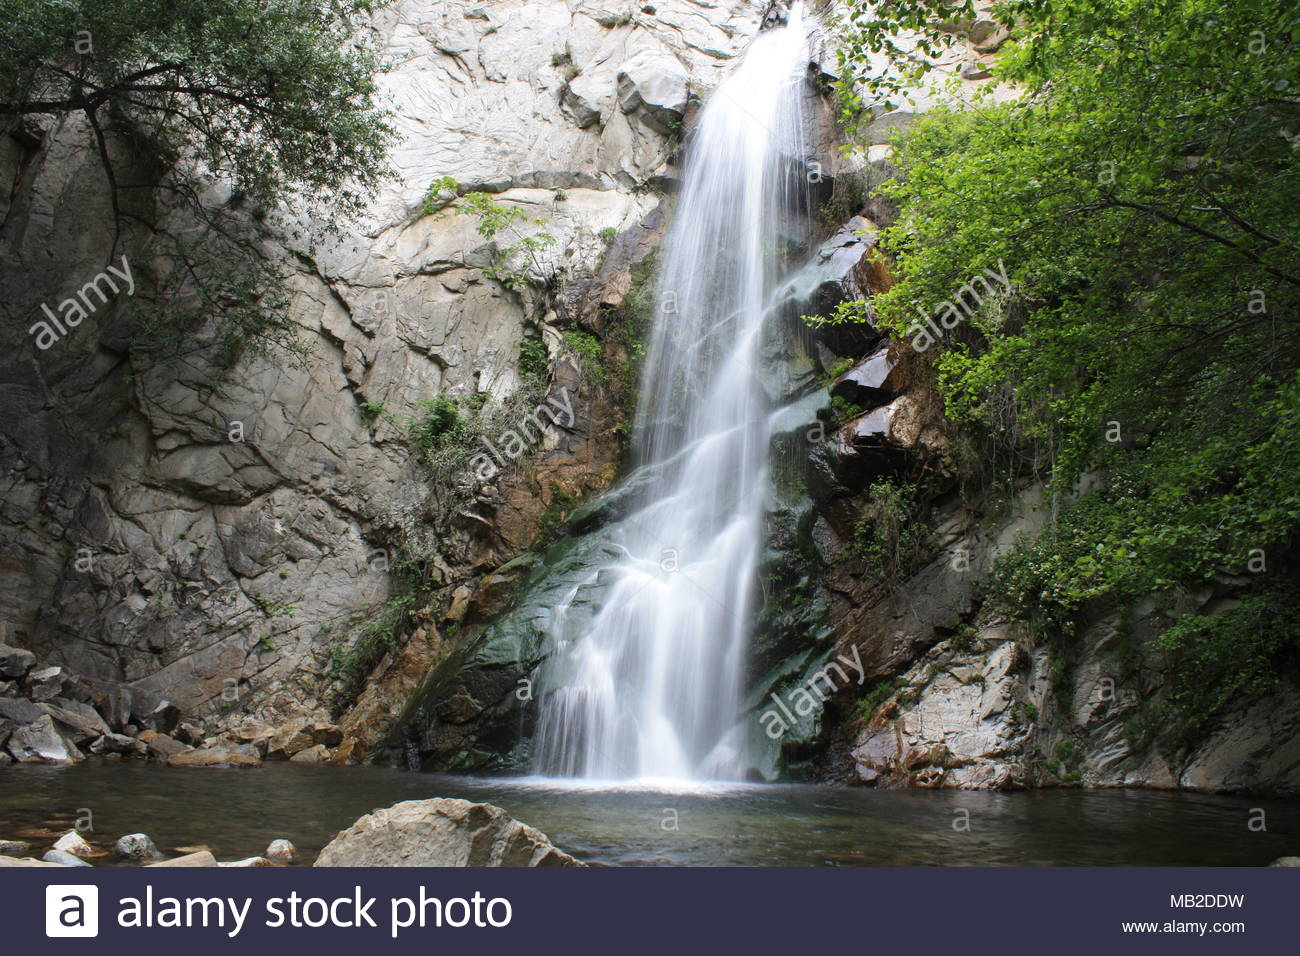 Sturtevant Falls in San Gabriel Mtns. near Chantry Flats, Los Angeles, CA Stock Photo